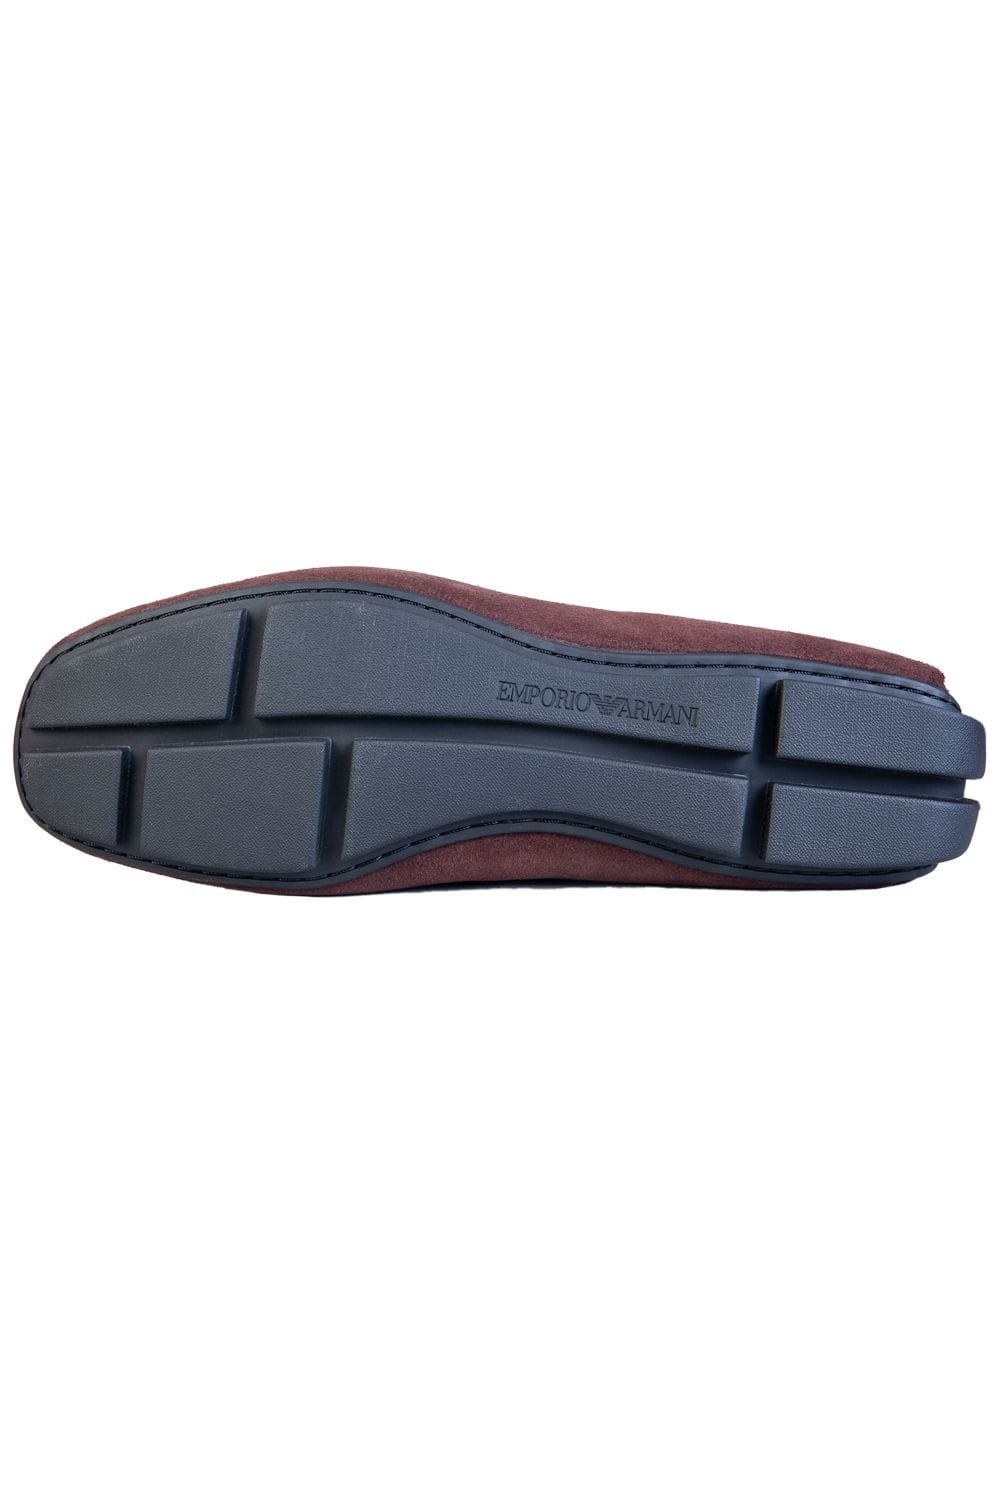 Hudson Loafers Shoes DICKSON Mens SUEDE Mens DICKSON New aff586